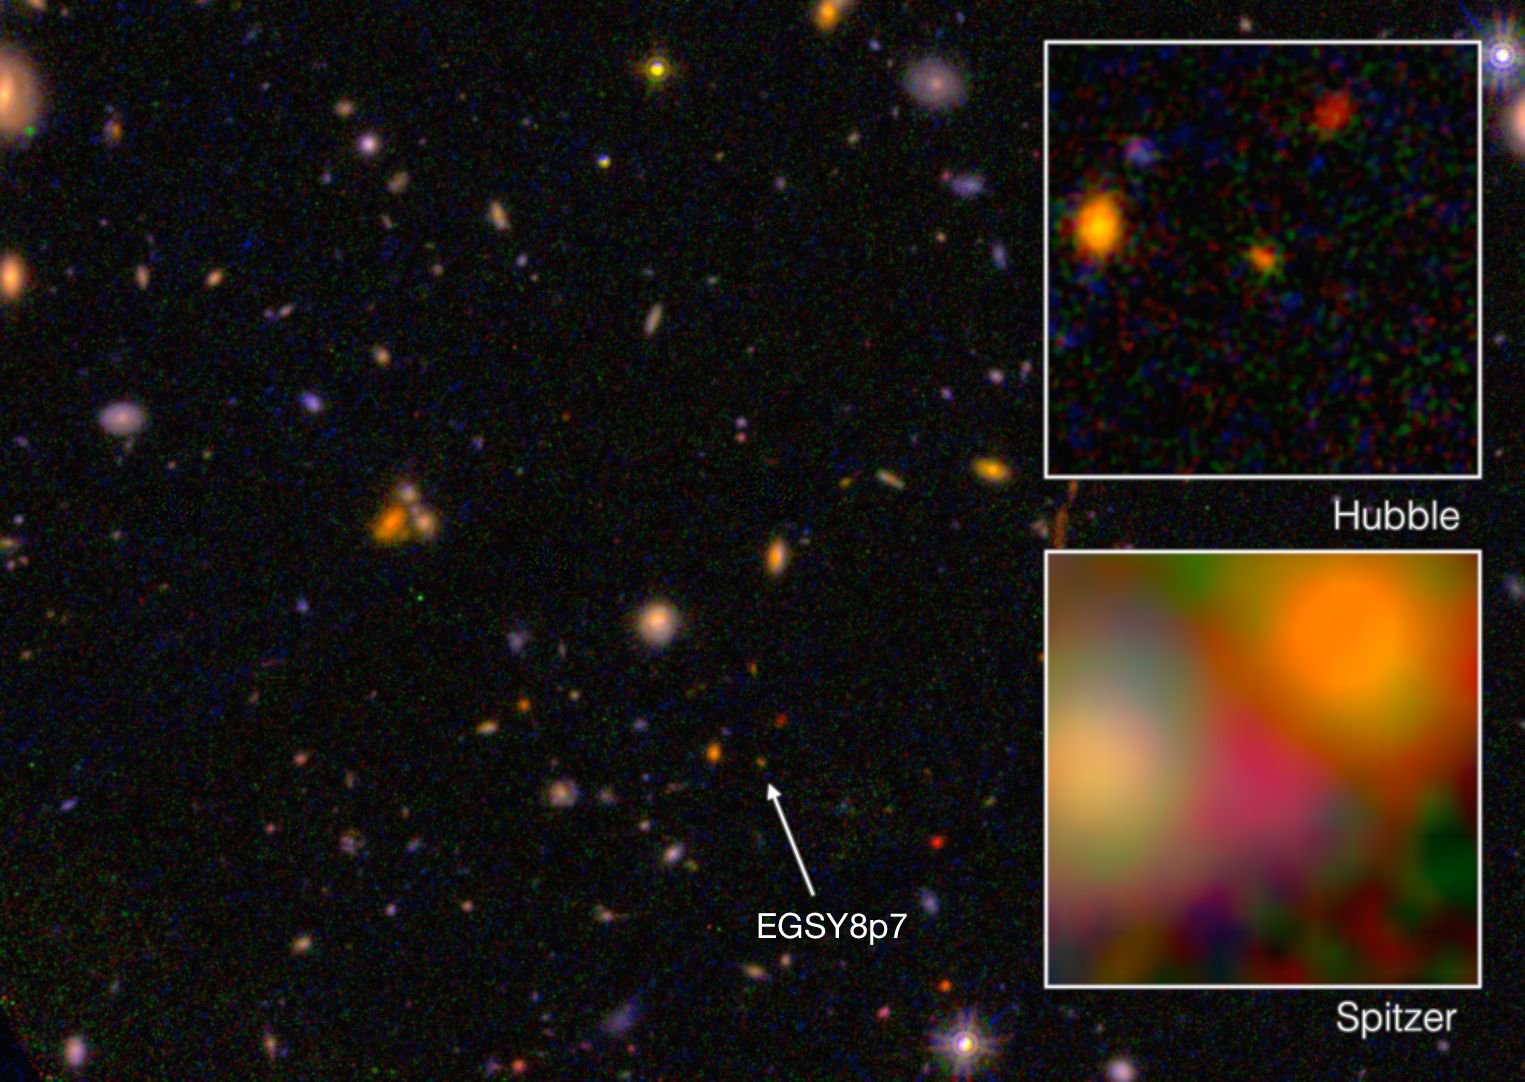 """<p><span style=""""font-family: Arial, Helvetica, sans-serif; font-size: 14px; line-height: 20px; background-color: #eeeeee;"""">Acolor composite image of the galaxy EGS8p7 from data taken with the Hubble and Spitzer Space Telescopes.</span></p>"""